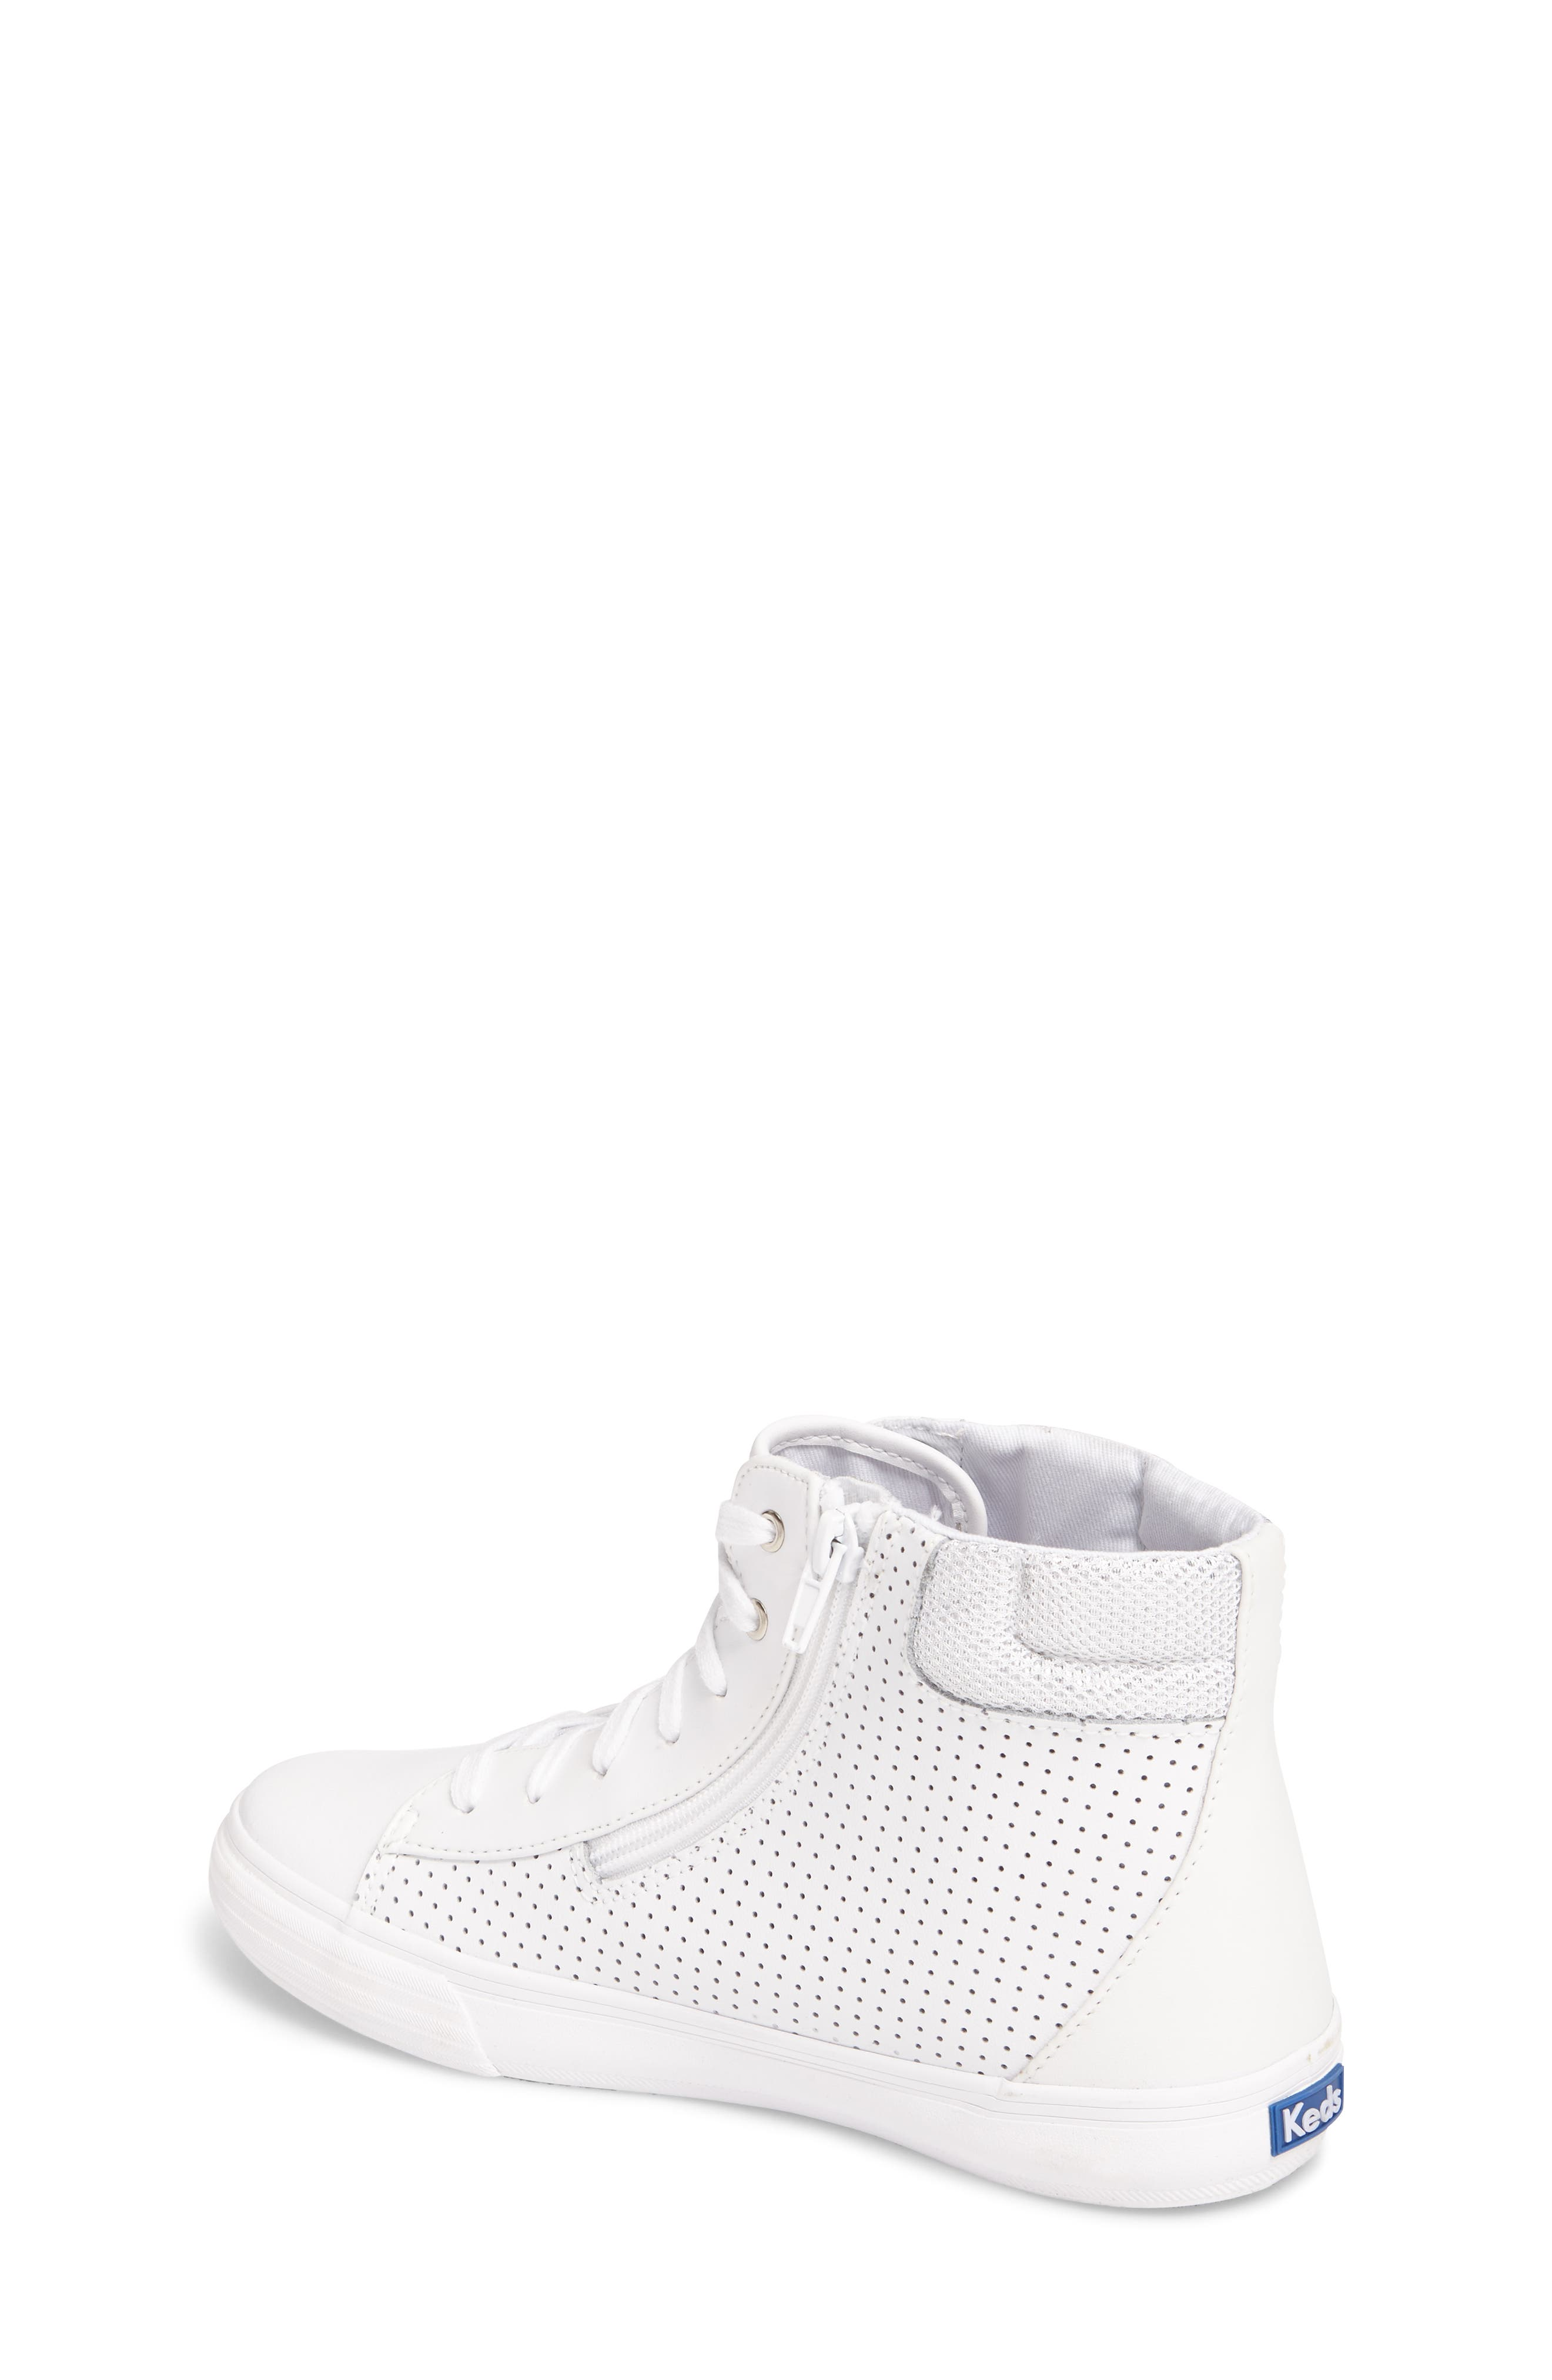 Alternate Image 2  - Keds® Double Up High Top Sneaker (Toddler, Little Kid & Big Kid)